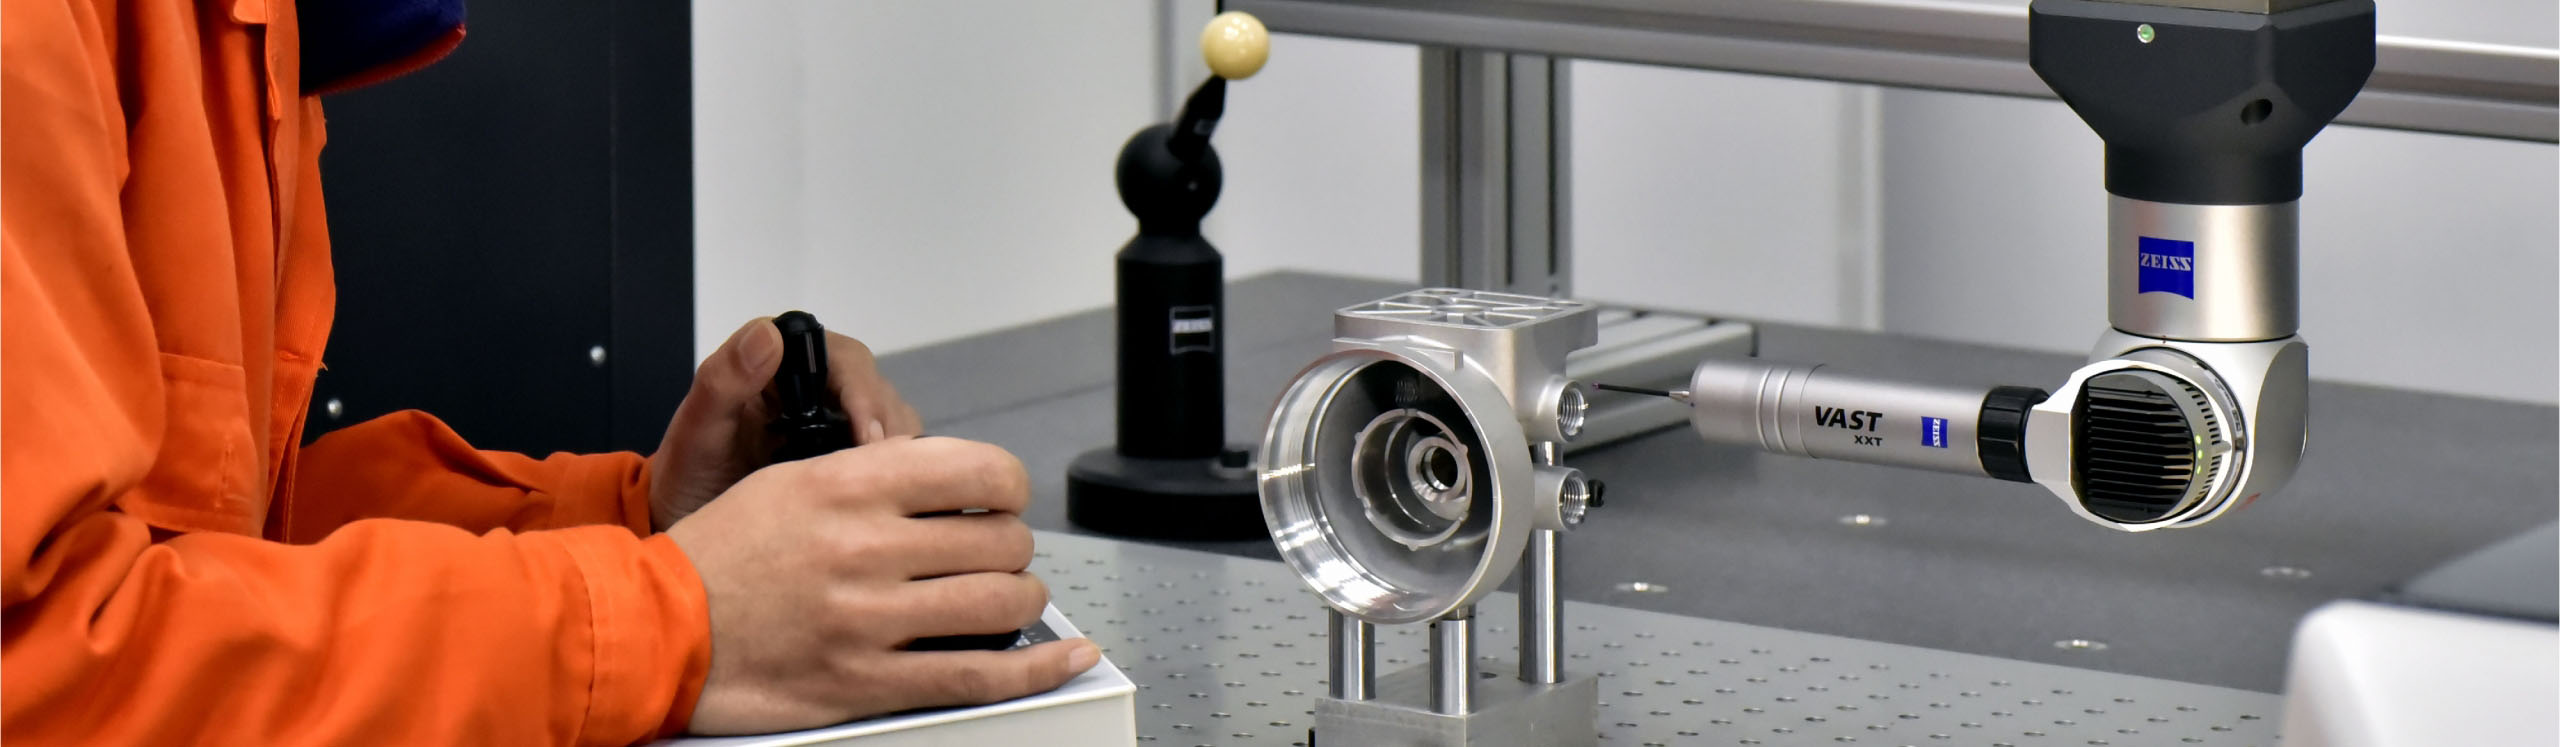 High Precision Measurement equipment-Quality